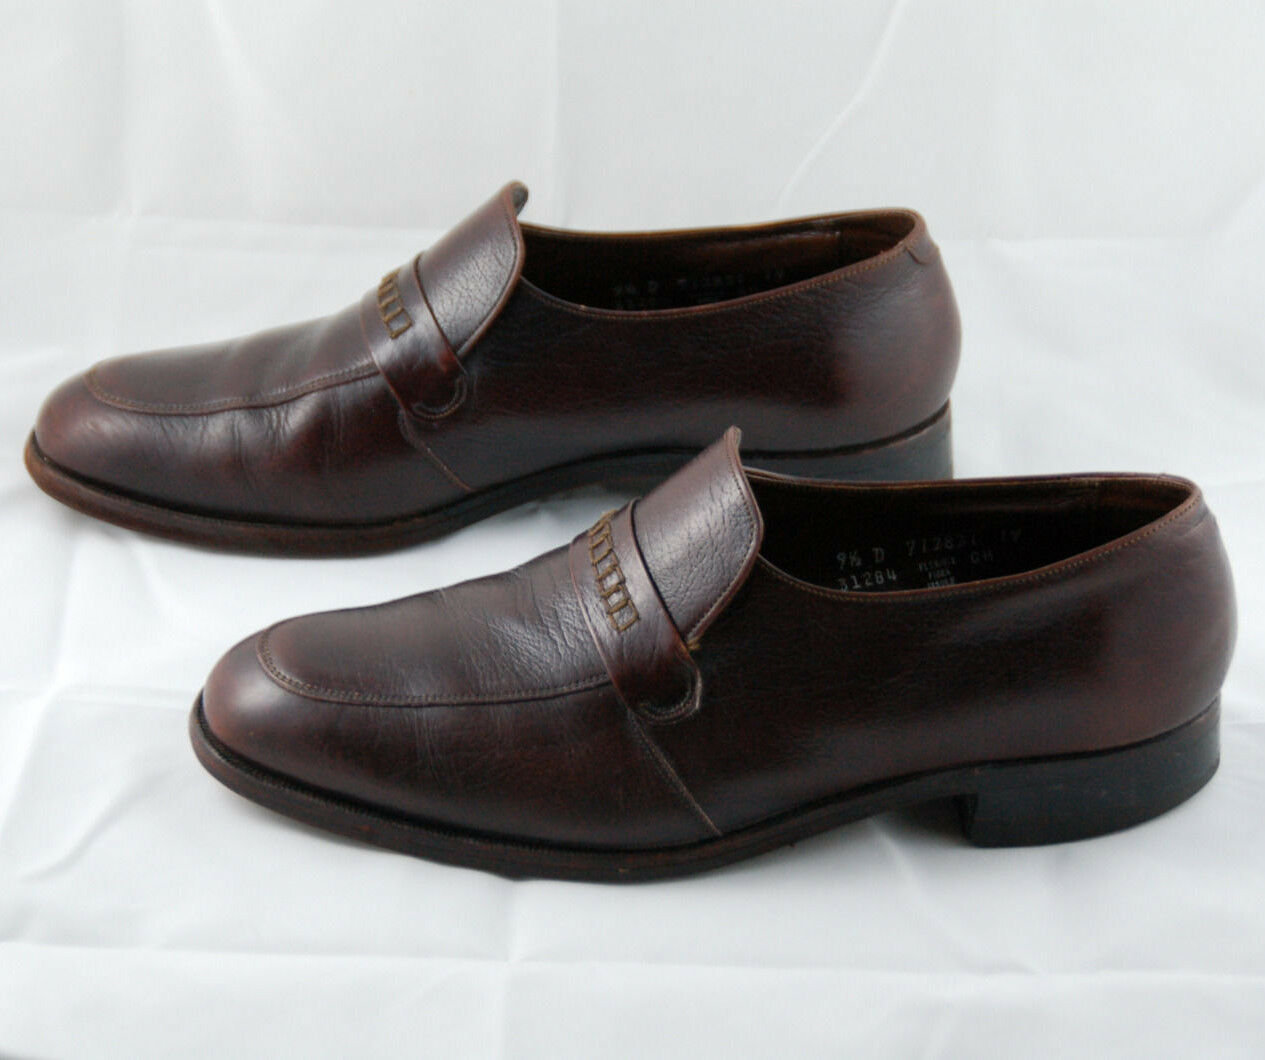 Florsheim Brown Leather Loafers Men's On Size 9.5 D Slip On Men's Flex Fiber Insole Shoes f8d7d4